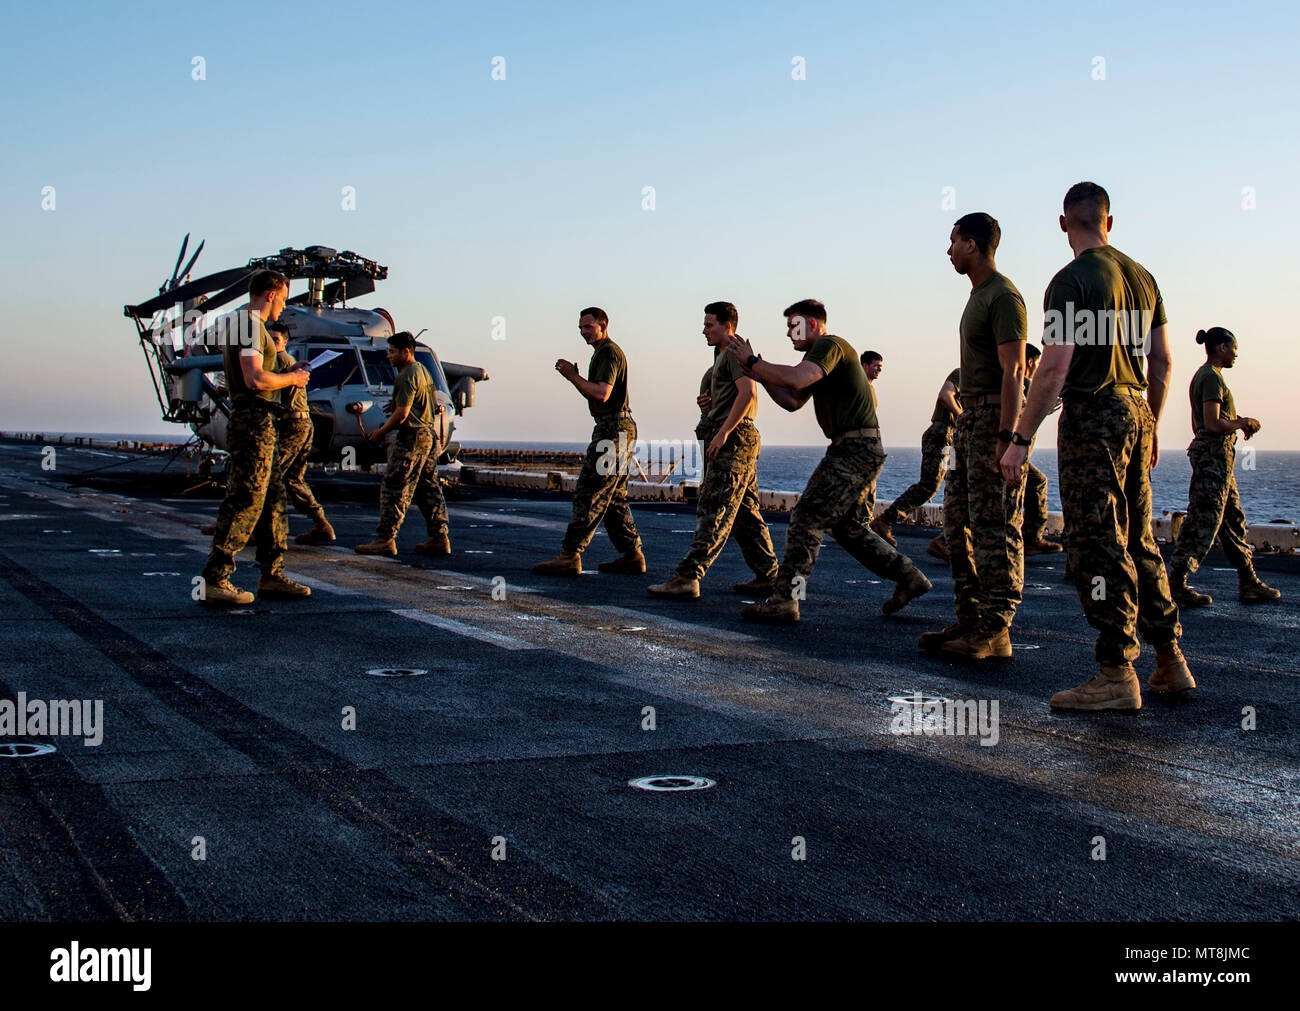 180515-N-ZK016-0002    U.S. 5TH FLEET AREA OF OPERATIONS (May 15, 2018) Marines, assigned to the 26th Marine Expeditionary Unit practice hand-to-hand combat exercises on the flight deck of the Wasp-class amphibious assault ship USS Iwo Jima (LHD 7), May 15, 2018. Iwo Jima, homeported in Mayport, Fla., is on deployment to the U.S. 5th Fleet area of operations in support of maritime security operations to reassure allies and partners, and preserve the freedom of navigation and the free flow of commerce in the region. (U.S. Navy photo by Mass Communication Specialist 3rd Class Joe J. Cardona Gonz Stock Photo